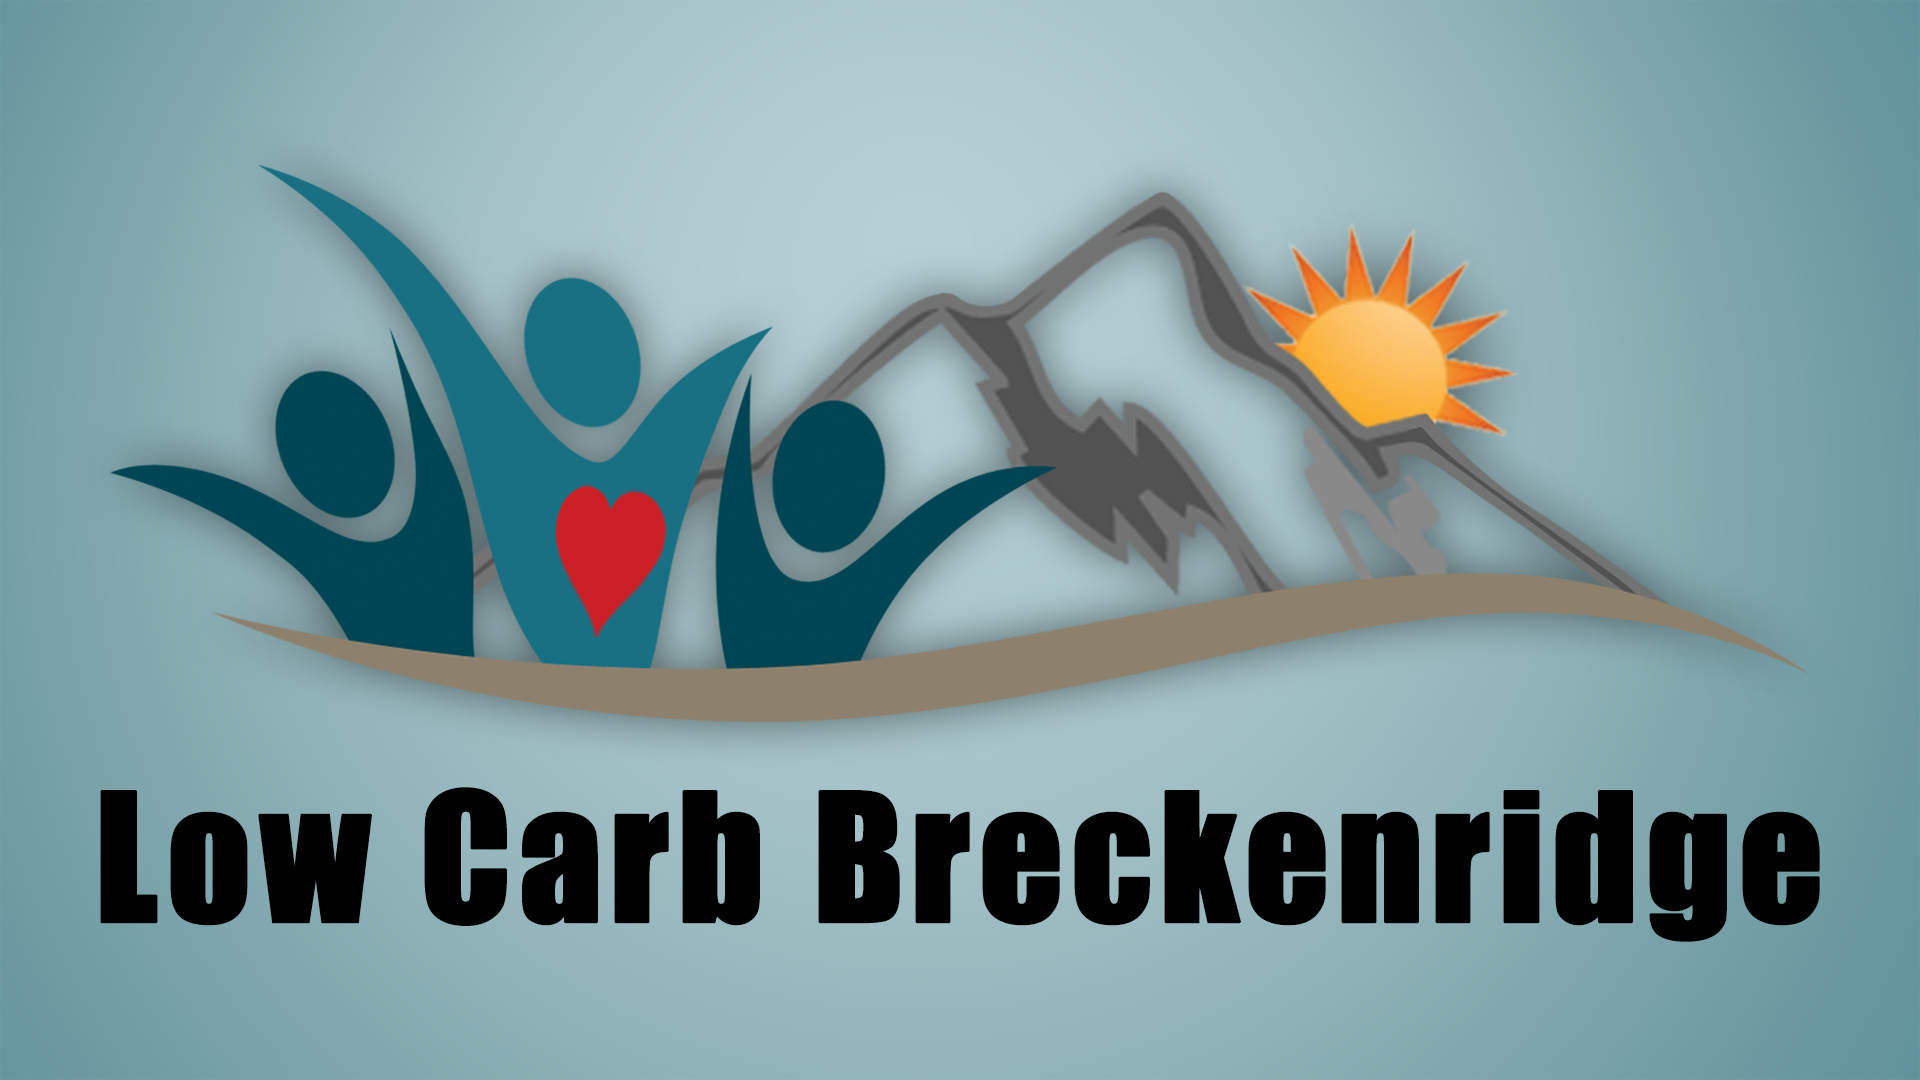 Low Carb Breckenridge 2017 Larger Logo